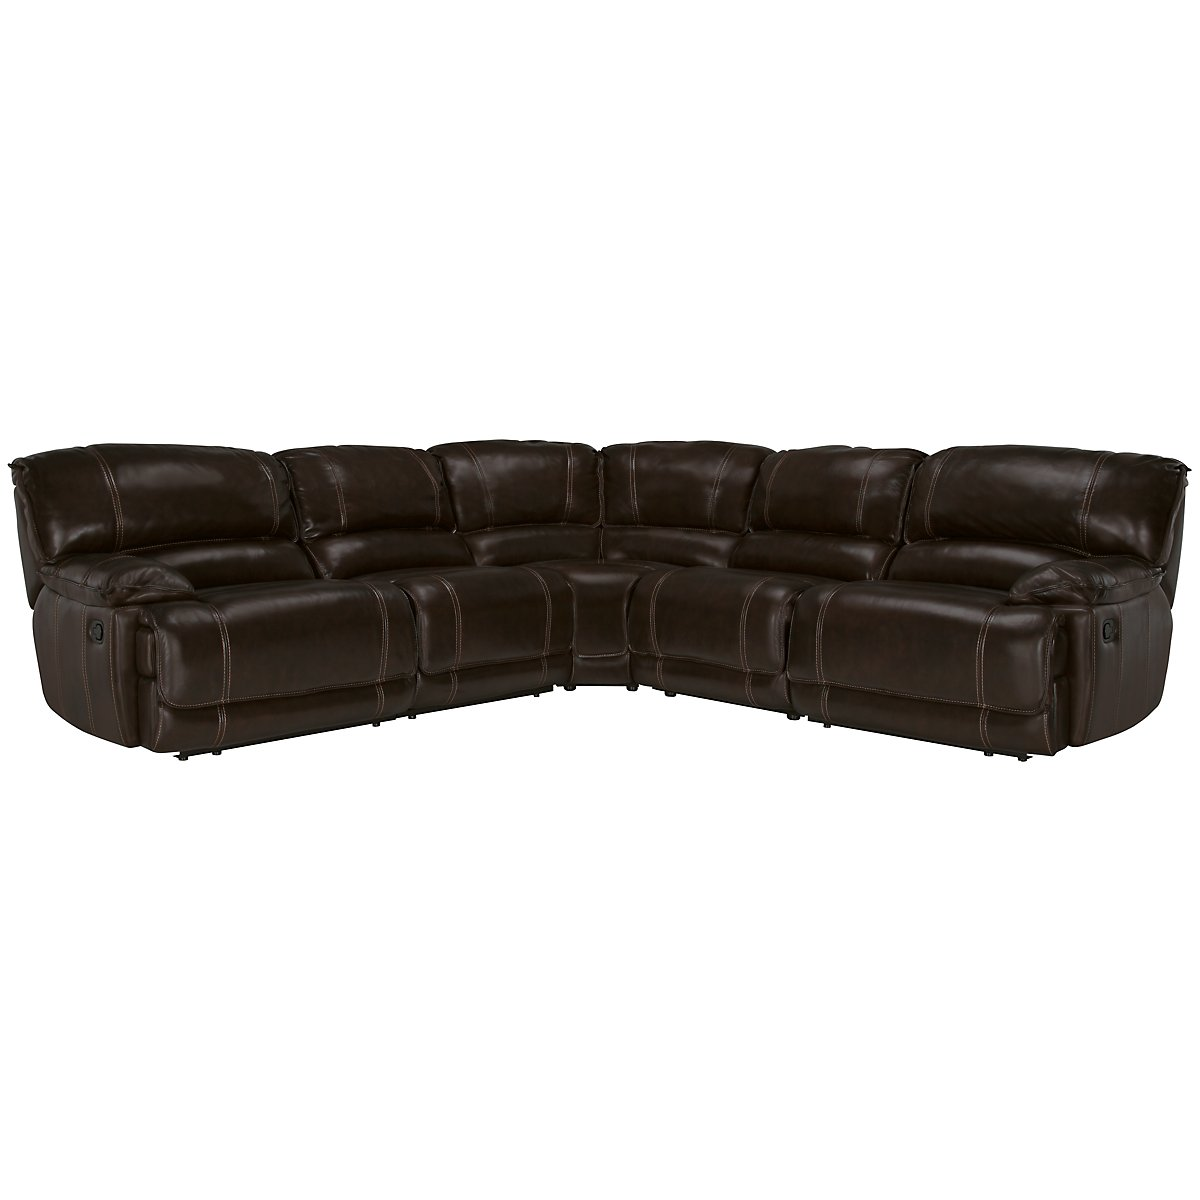 Benson Dk Brown Leather & Vinyl Small Two-Arm Manually Reclining Sectional